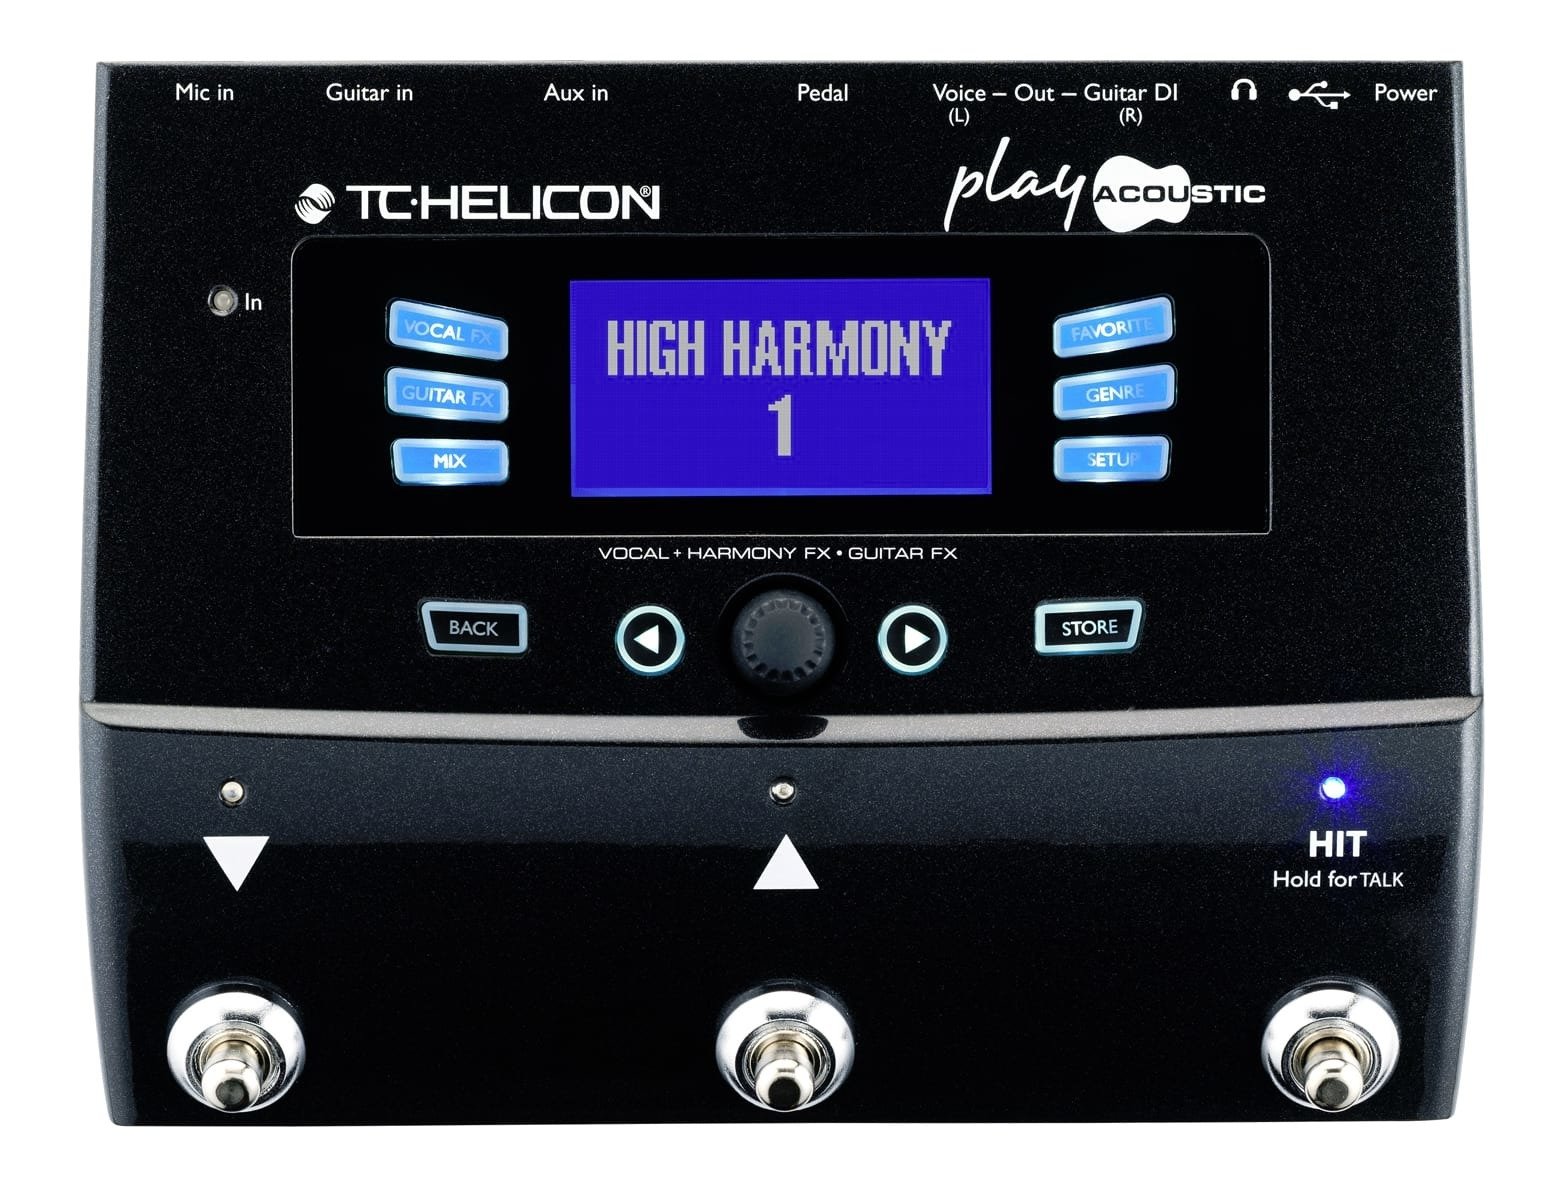 TC-Helicon VoiceLive Play Acoustic Vocal and Guitar Effects Pedal